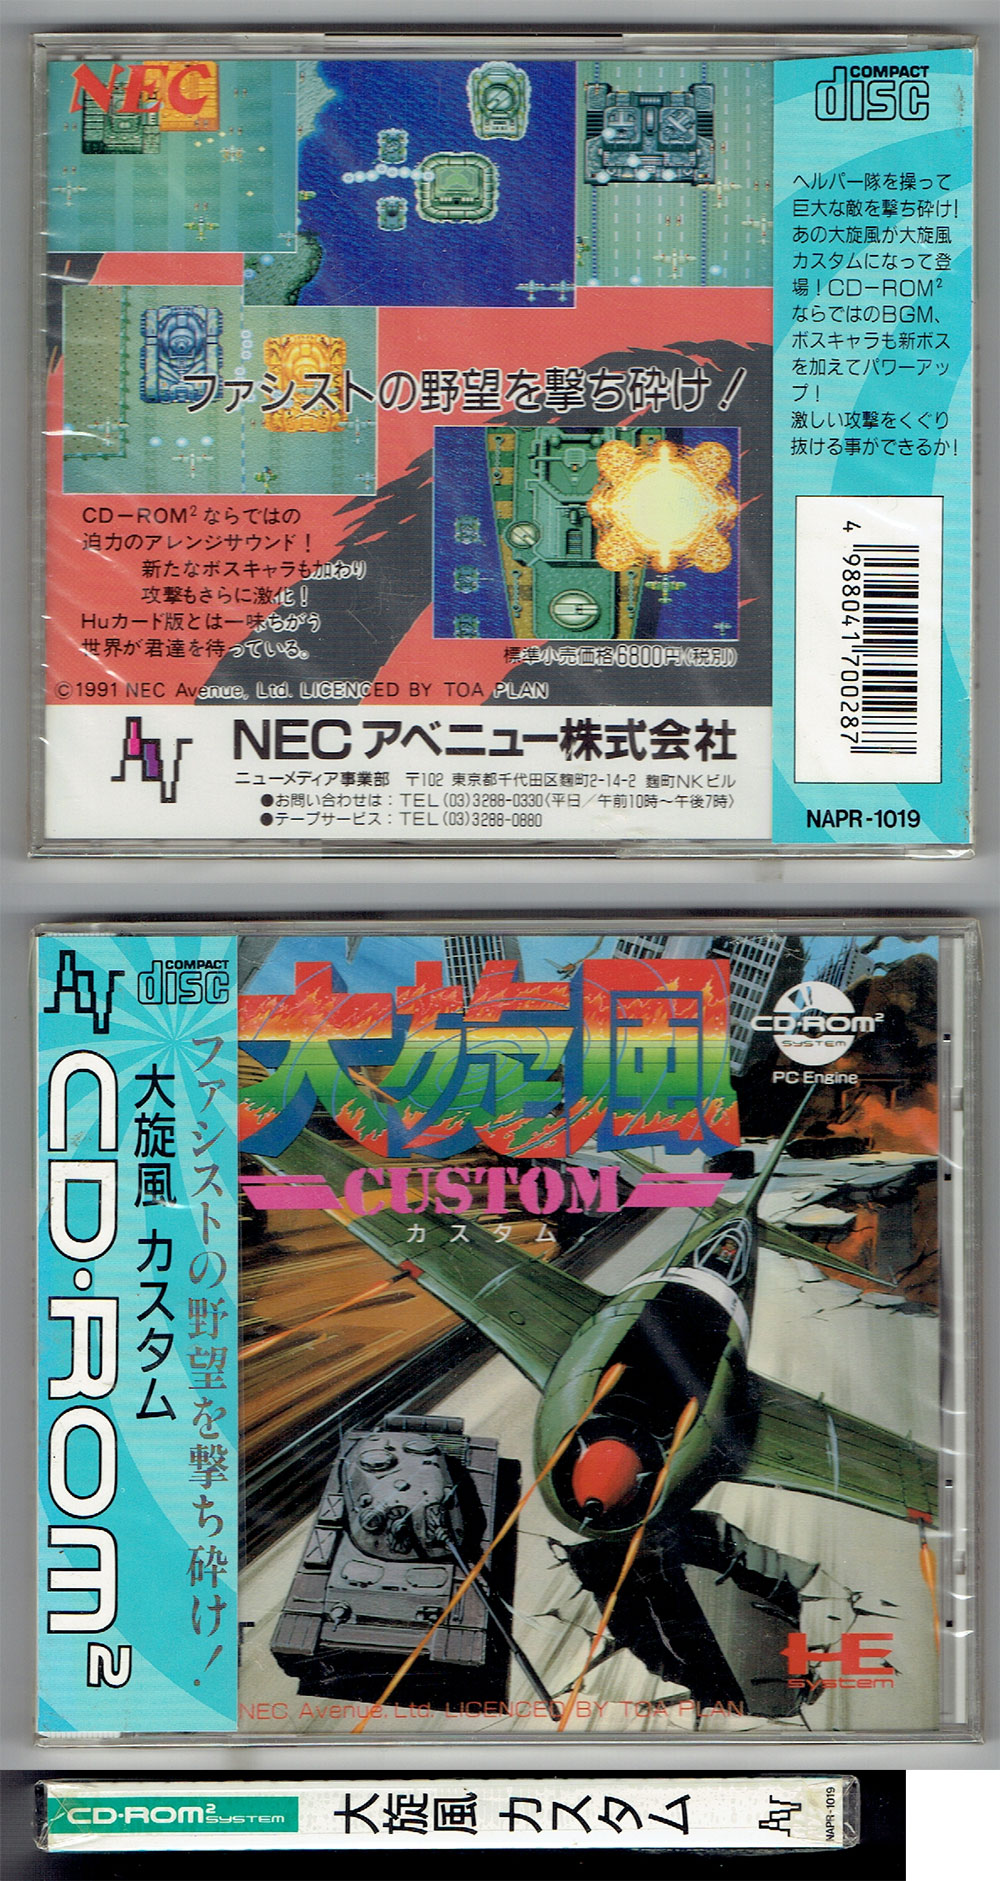 PC Engine CD ROM Imported Japanese Video Games page 1